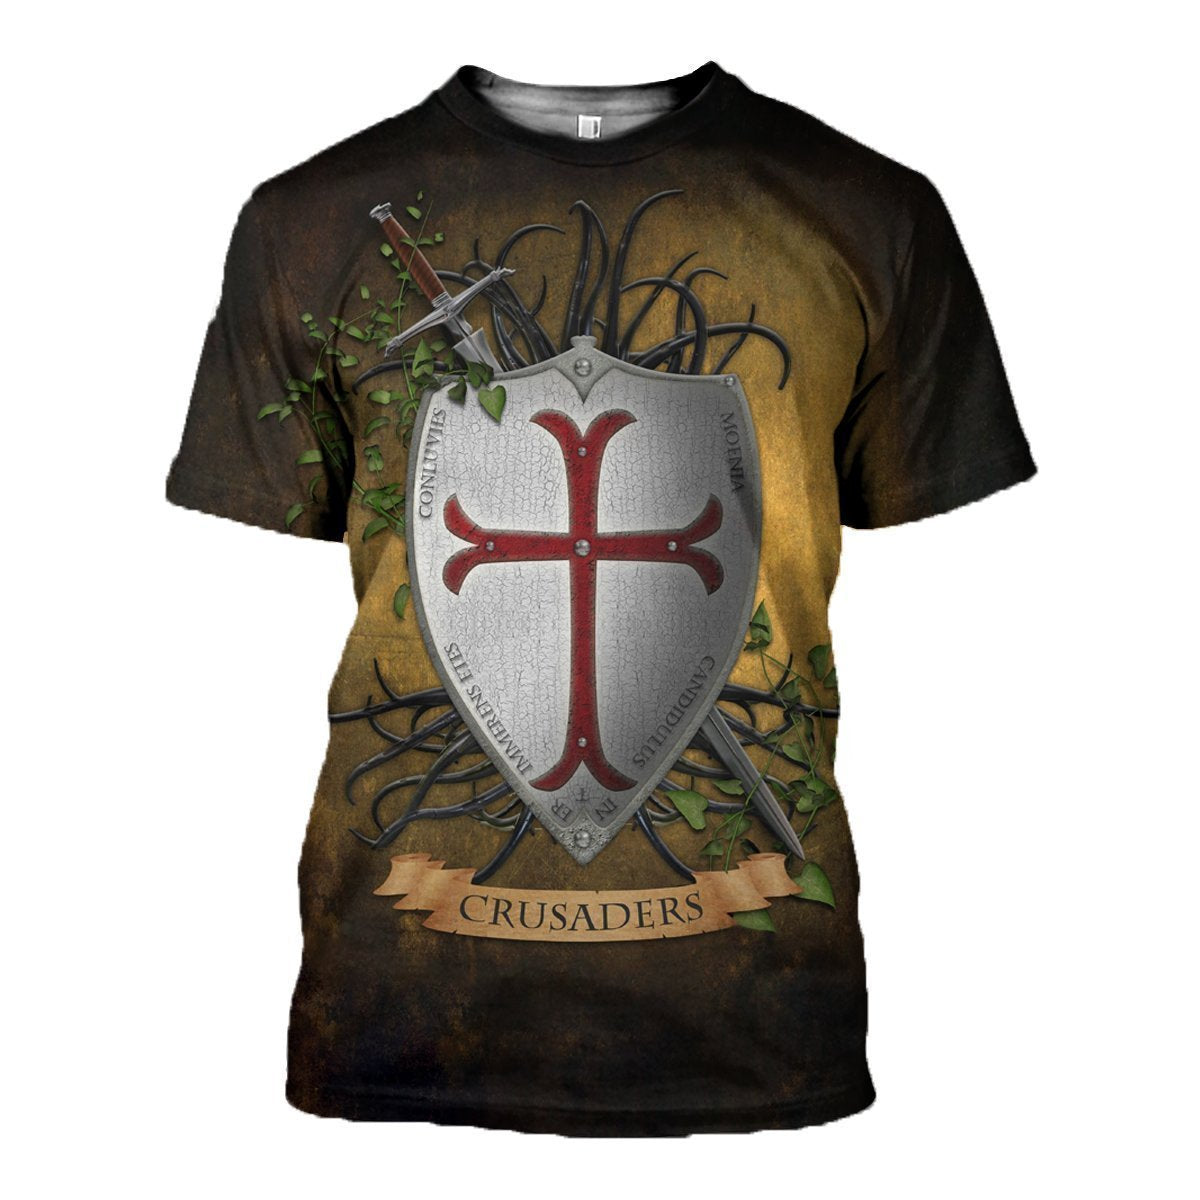 3D All Over Printed Knights Templar Shirts and Shorts-Knights Templar-RoosterArt-T-shirt-XS-Vibe Cosy™